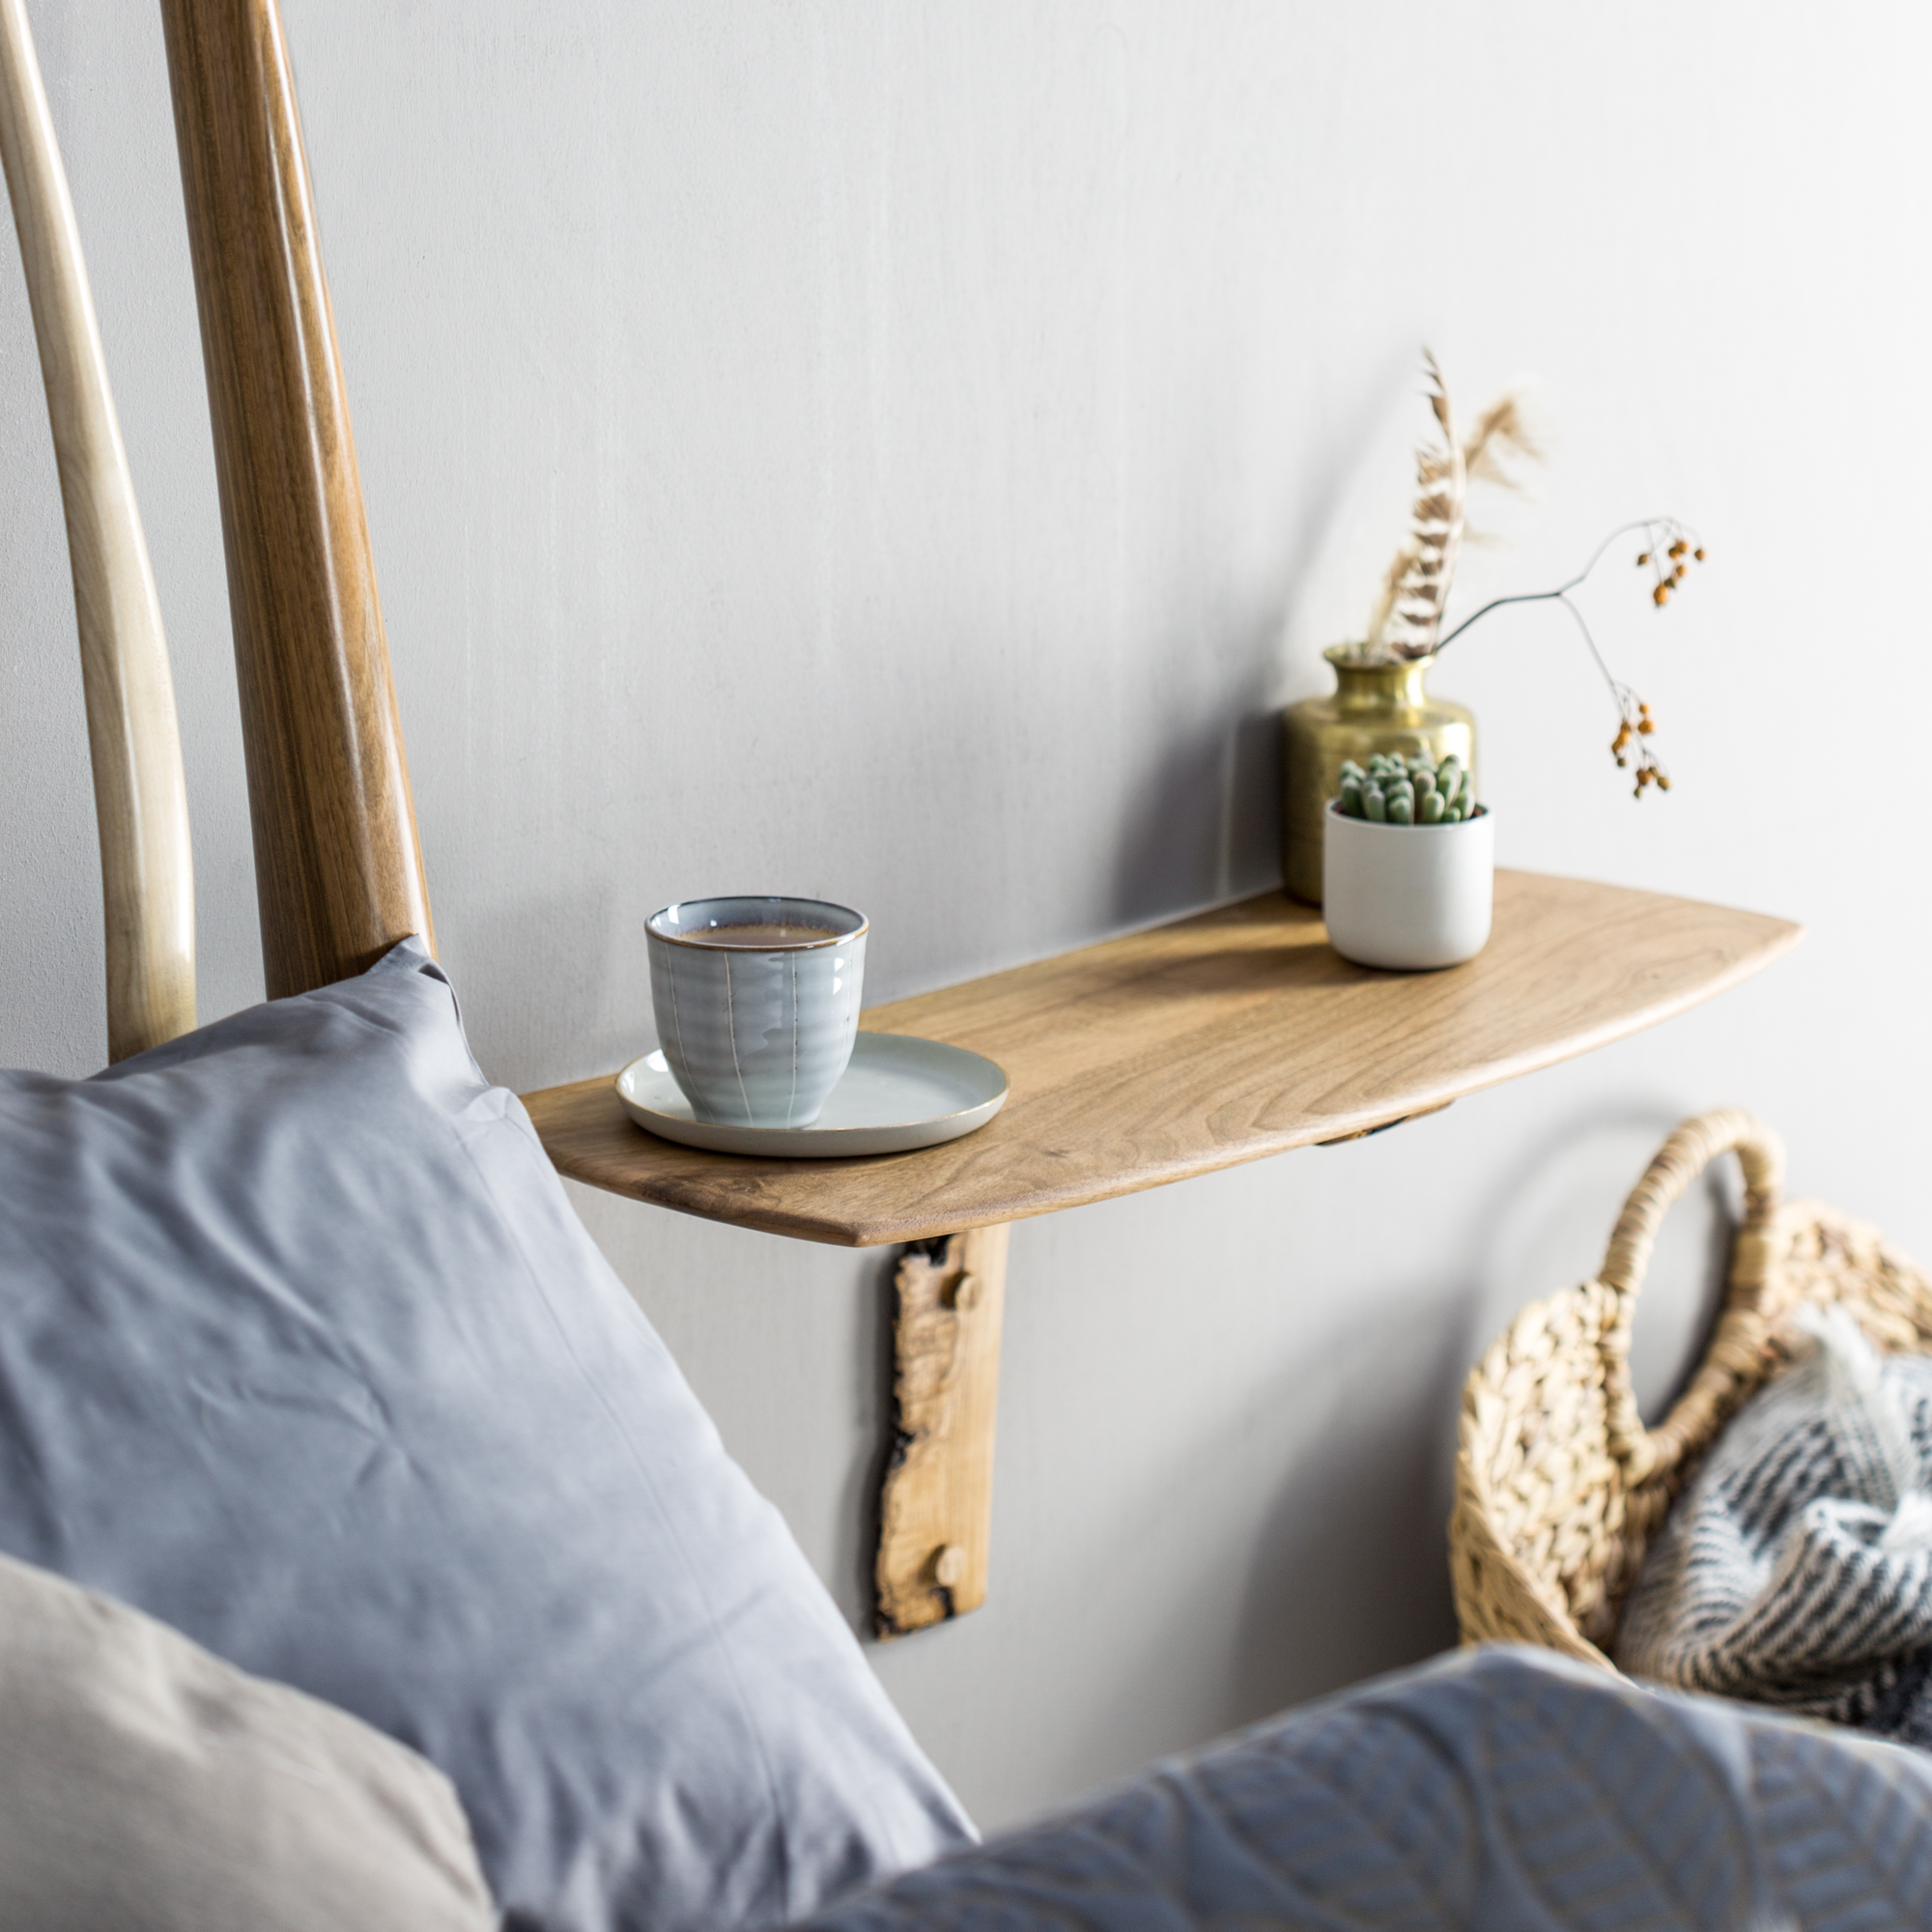 bed and small shelf-6.jpg